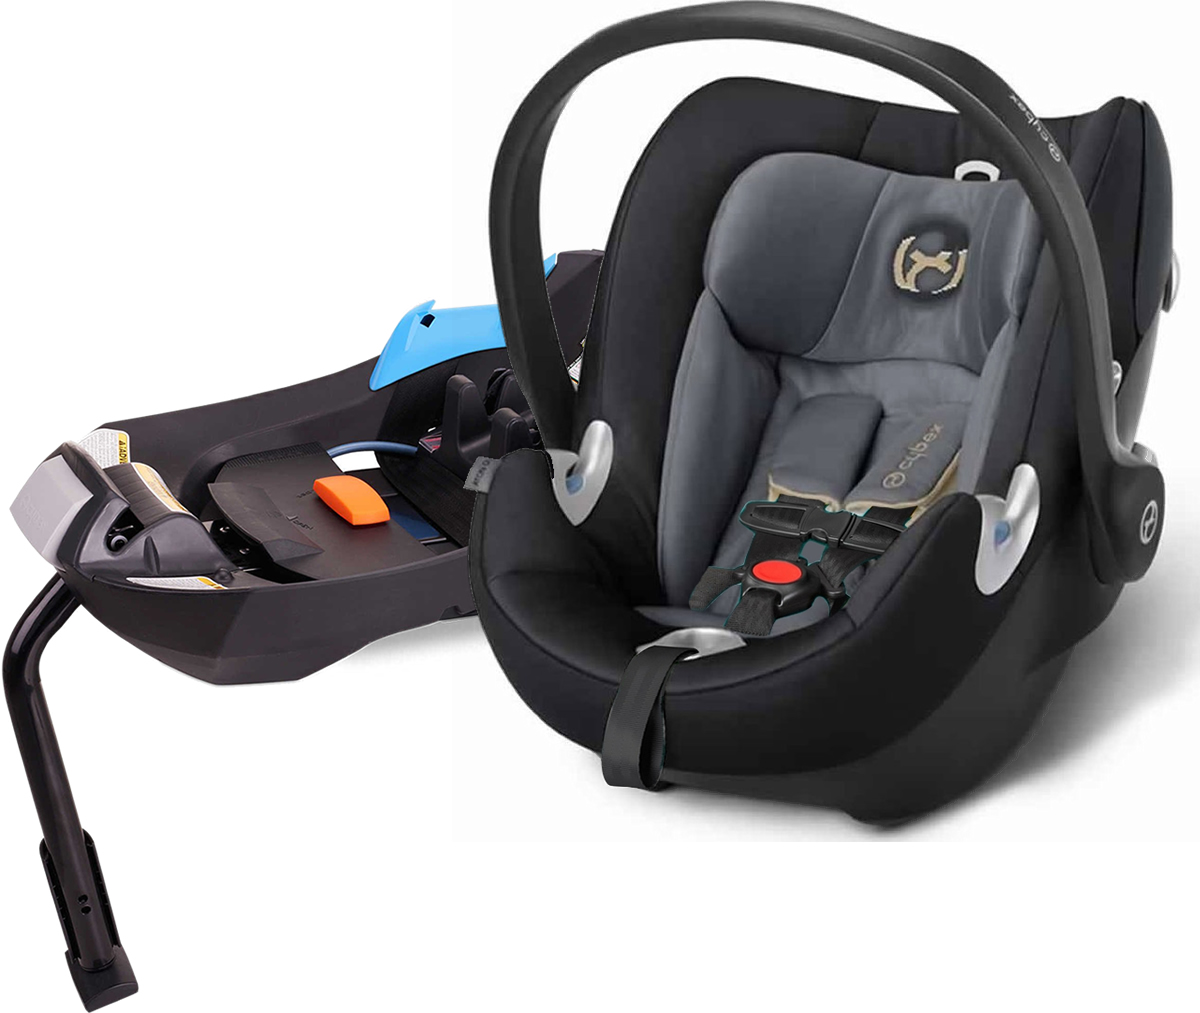 Avocent Aton Q Infant Car Seat - Graphite Black